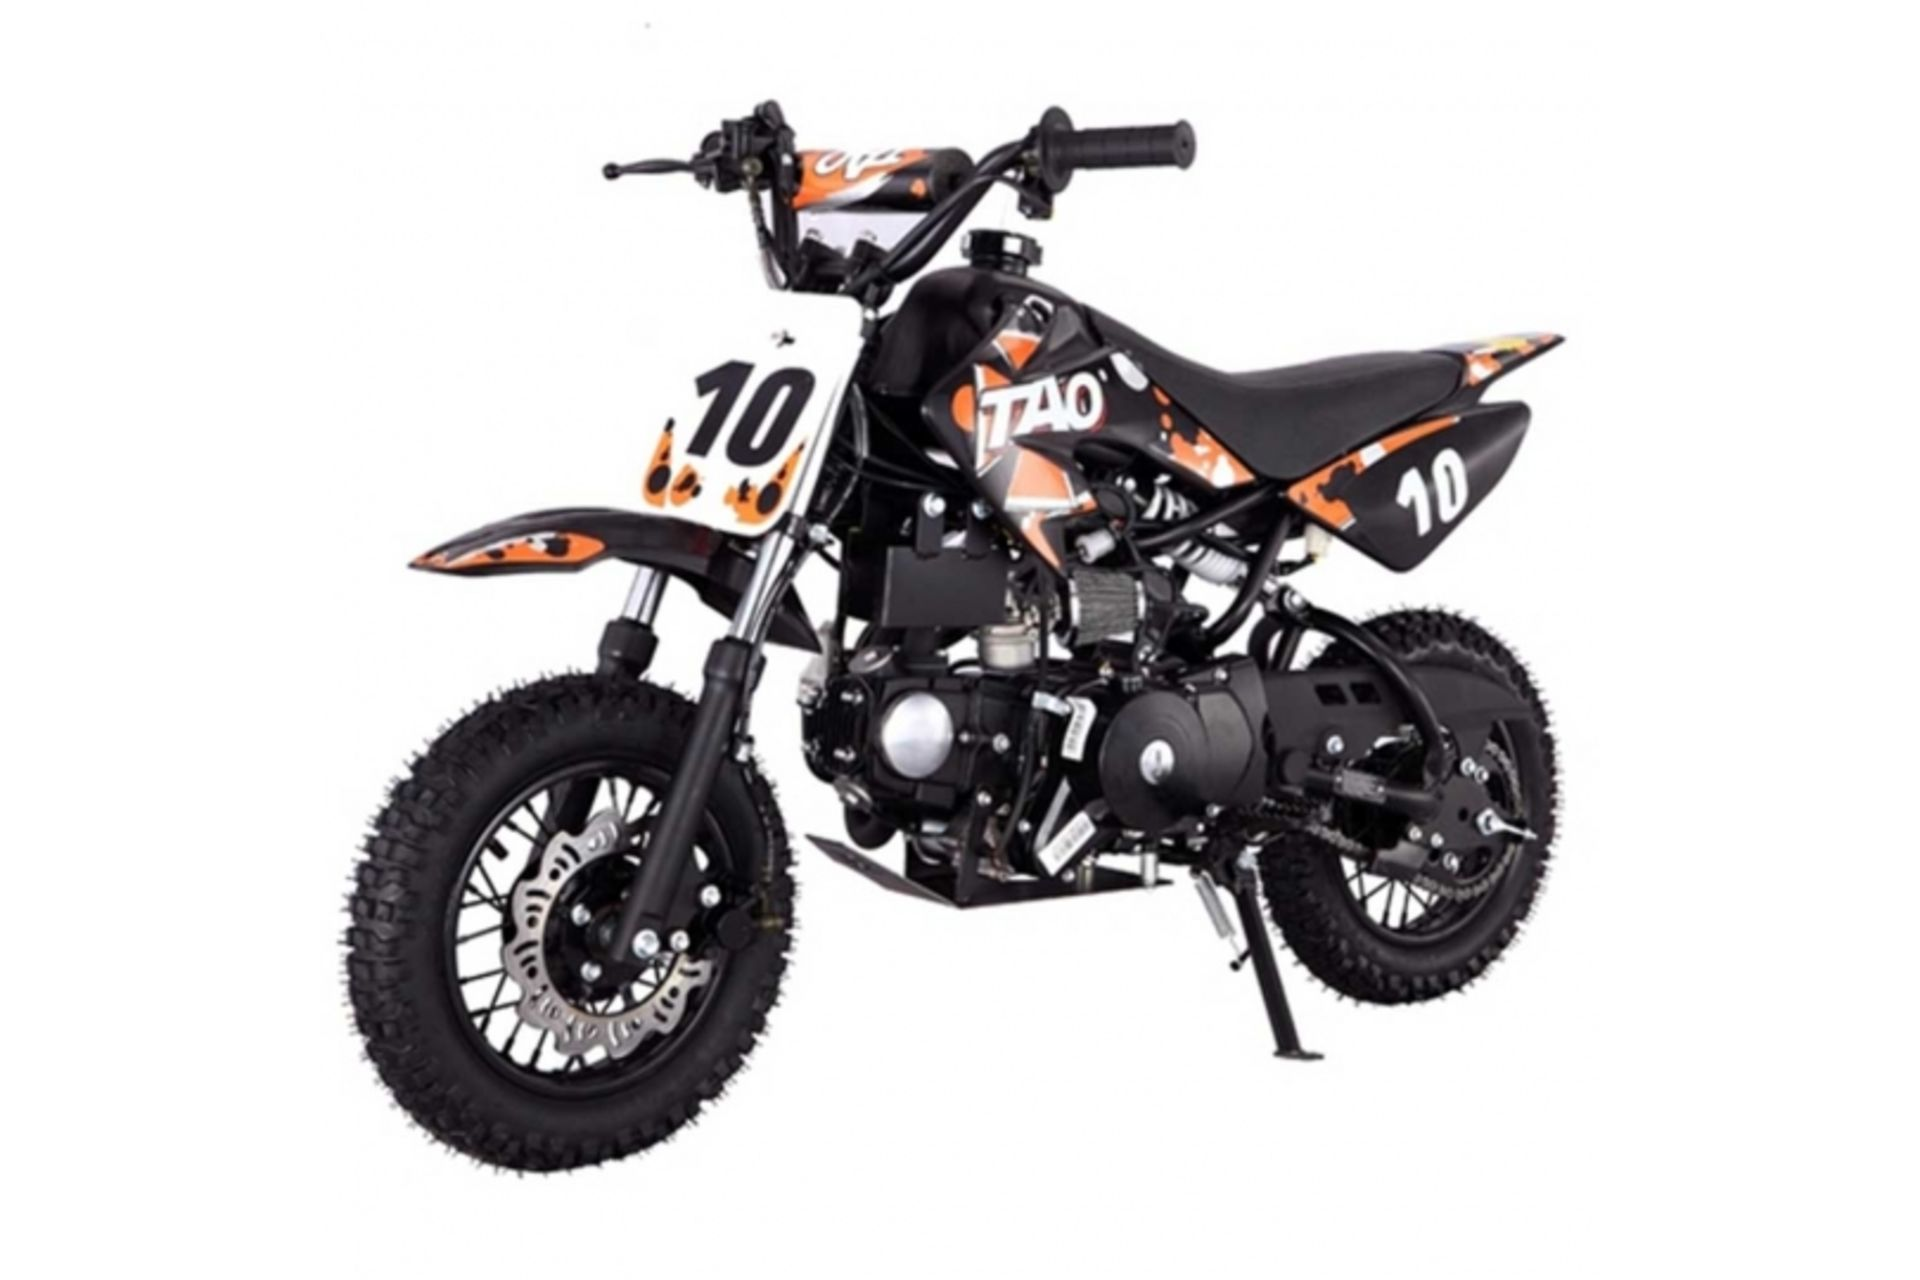 Lot 23024 - V Brand New 110cc USA Motocross Mini Dirt Bike - Electric Start - Air Cooled 4 Stroke -